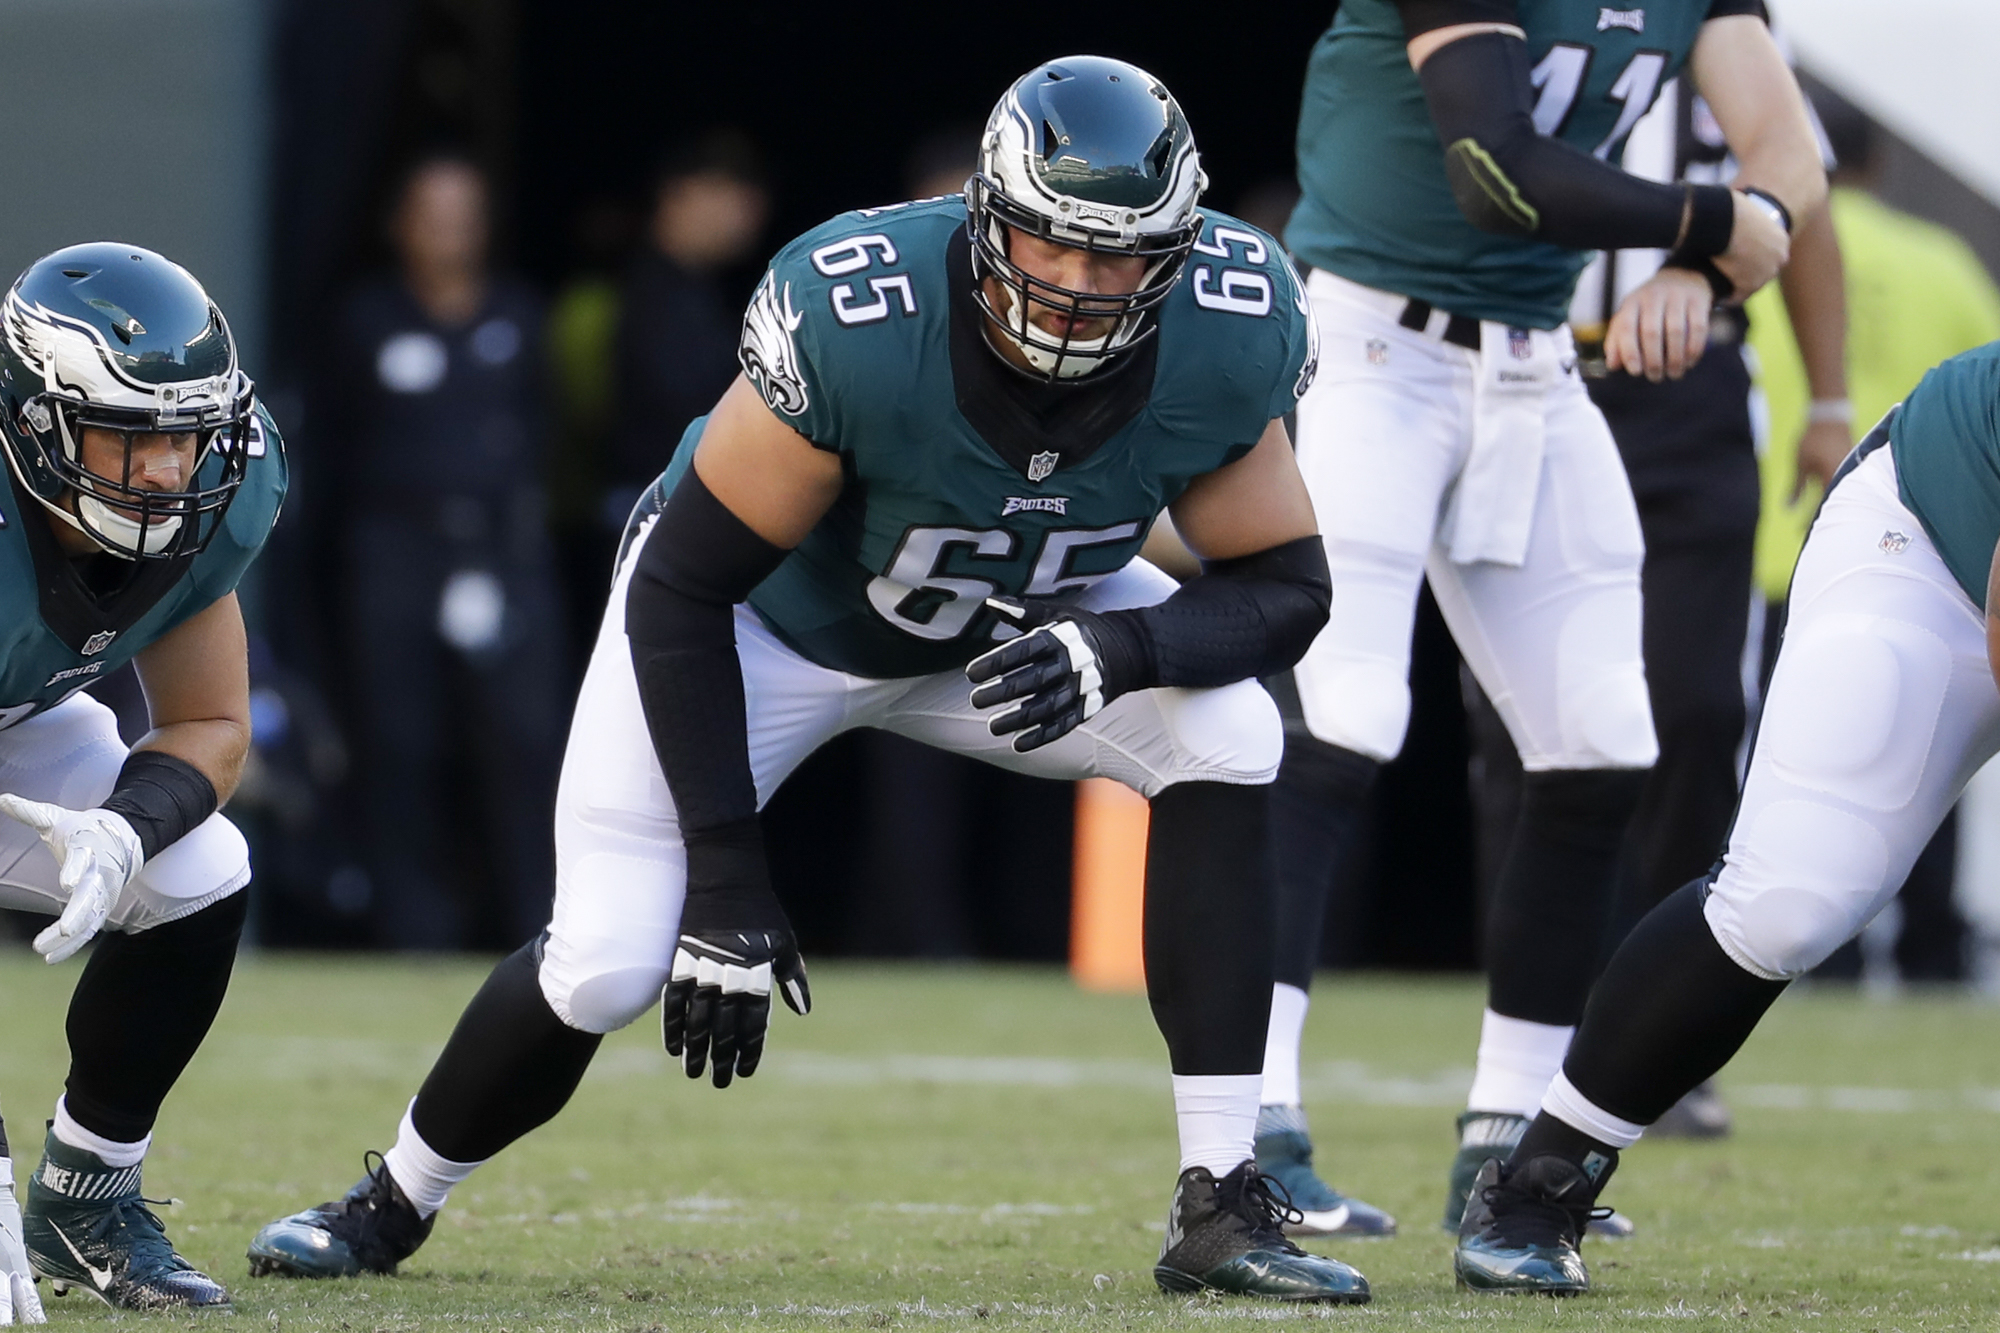 FILE - In this Sept. 25, 2016, file photo, Philadelphia Eagles tackle Lane Johnson (65) waits for a play to start during the first half of the NFL football game against the Pittsburgh Steelers, in Philadelphia. Eagles right tackle Lane Johnson has been su